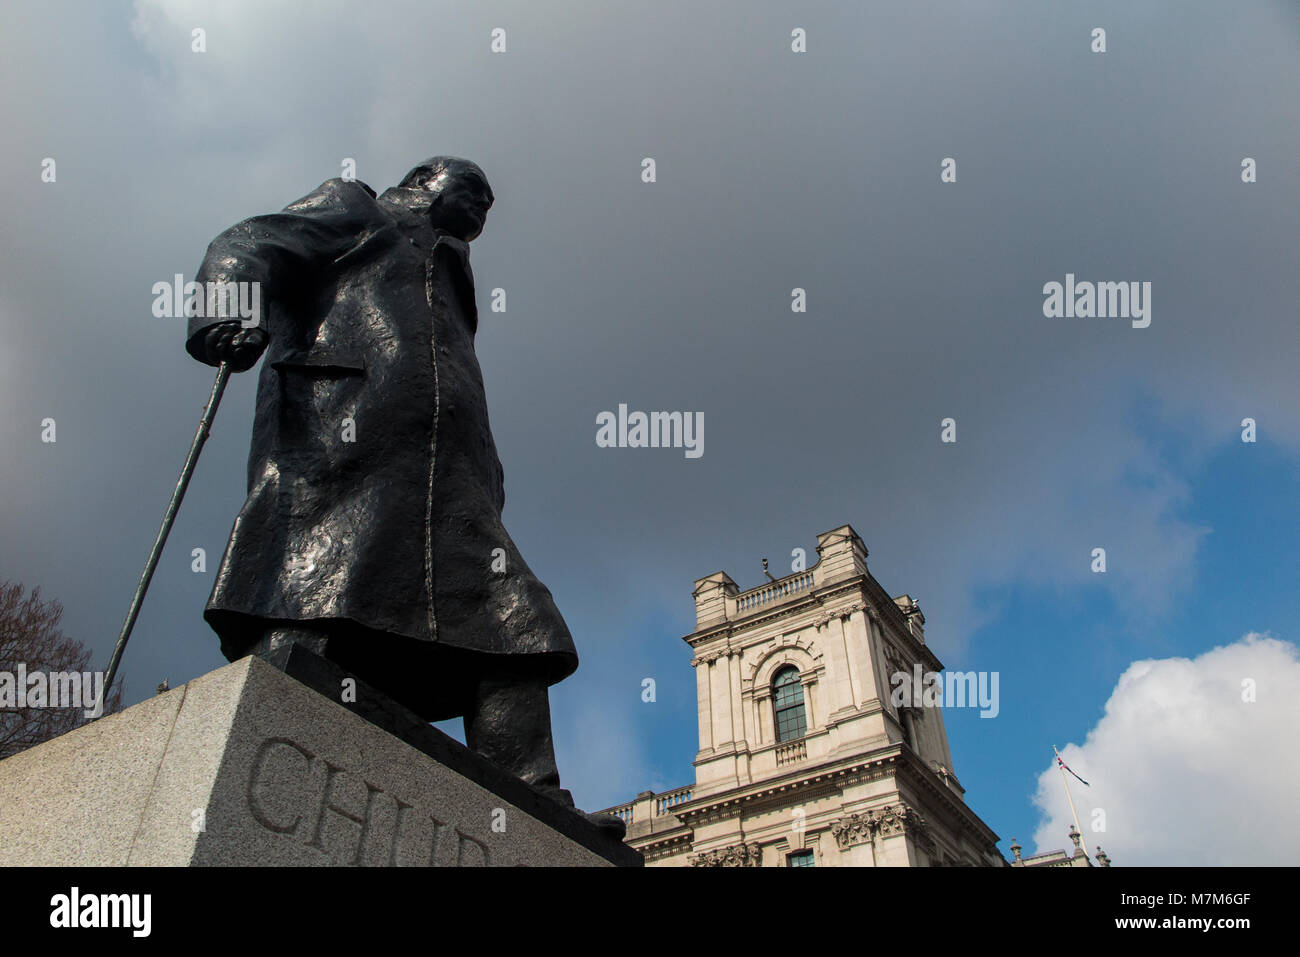 Sir Winston Churchill statue in Parliament Square, central London - Stock Image